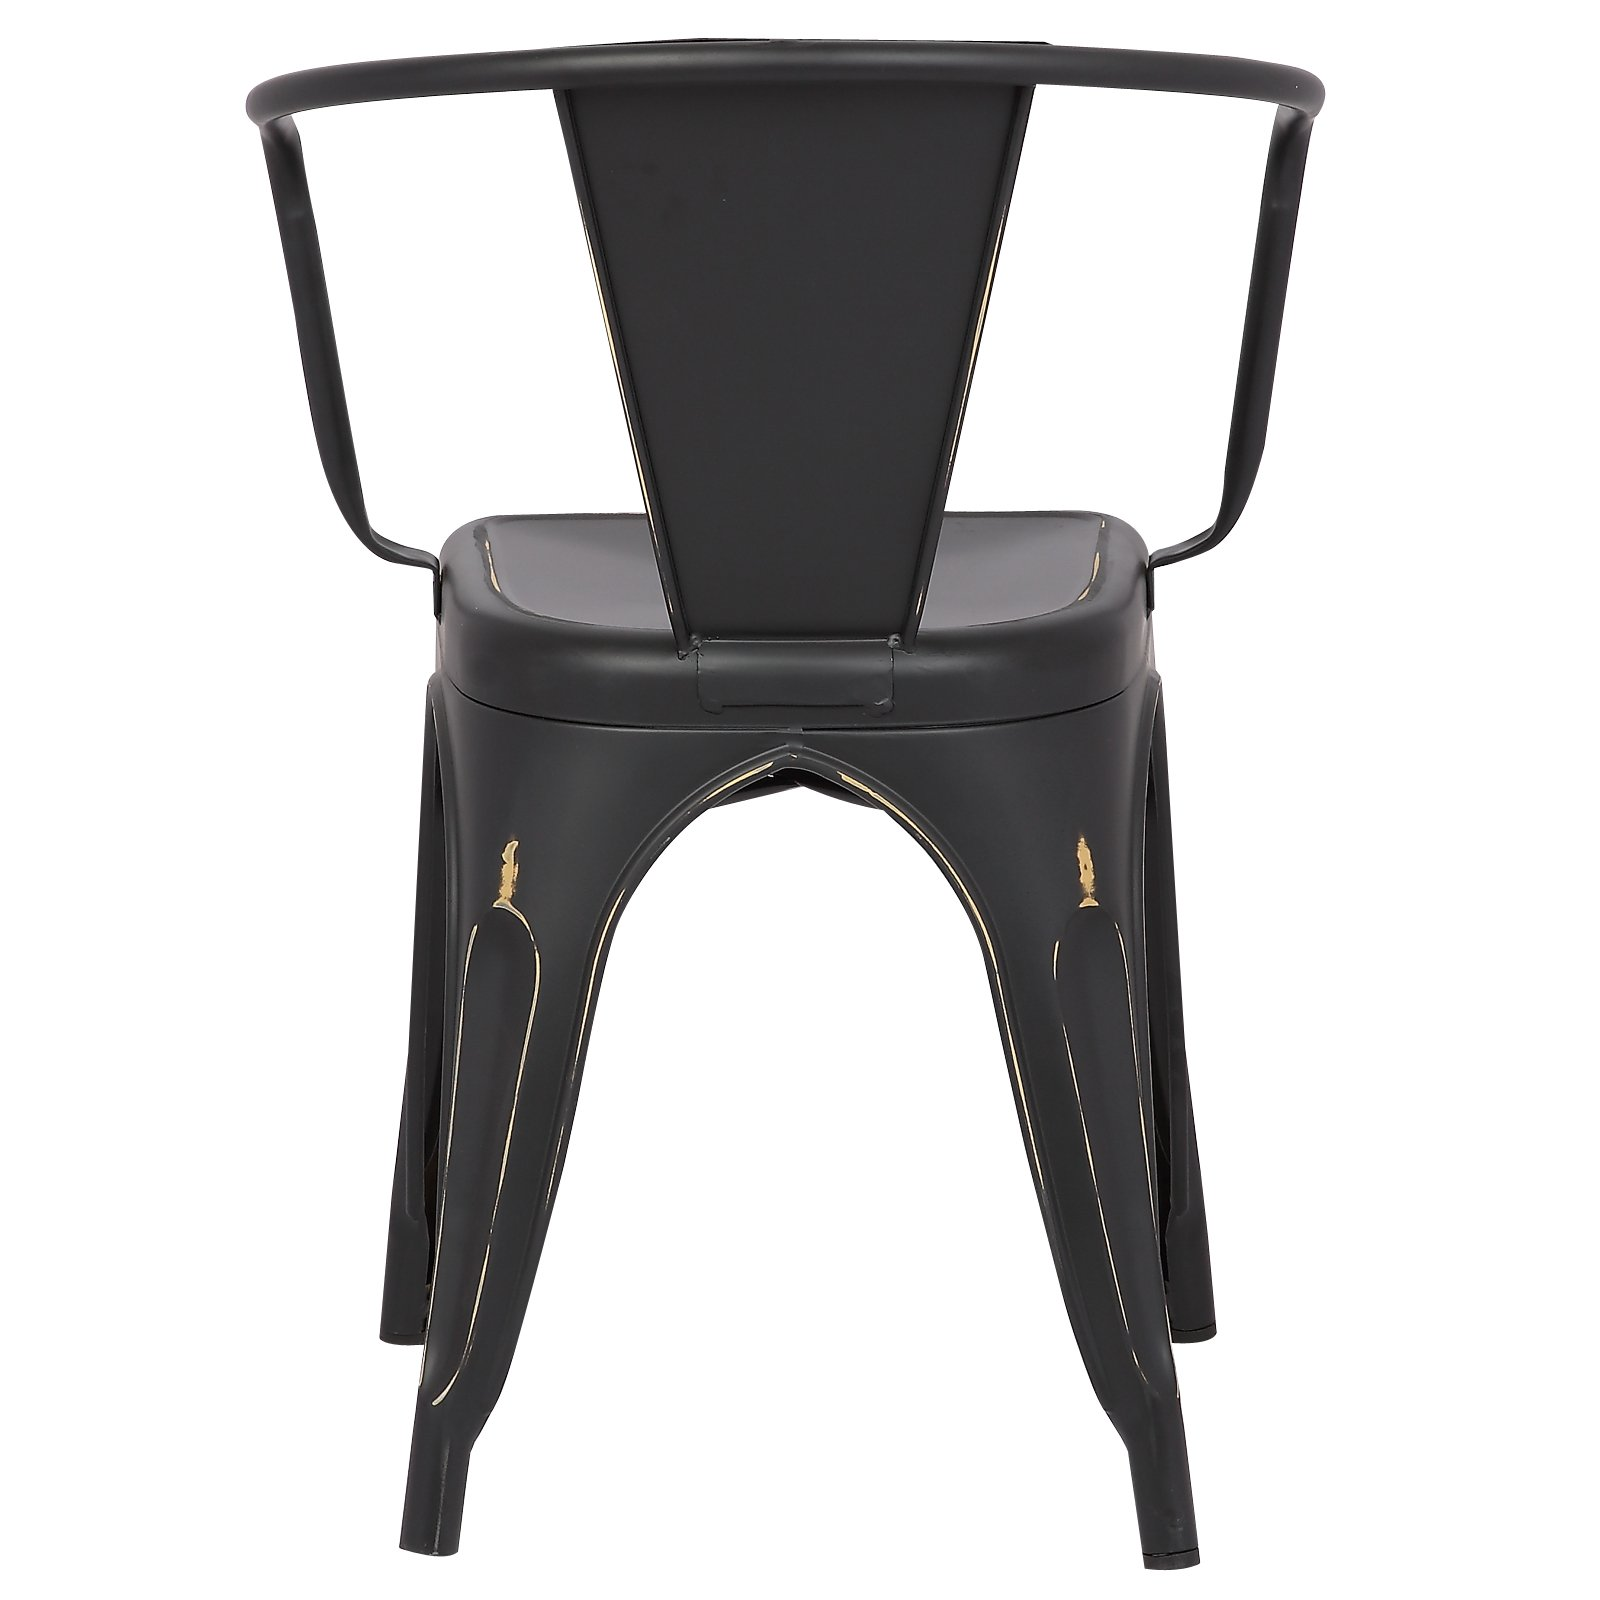 Poly and Bark Trattoria Arm Chair in Distressed Black (Set of 2)